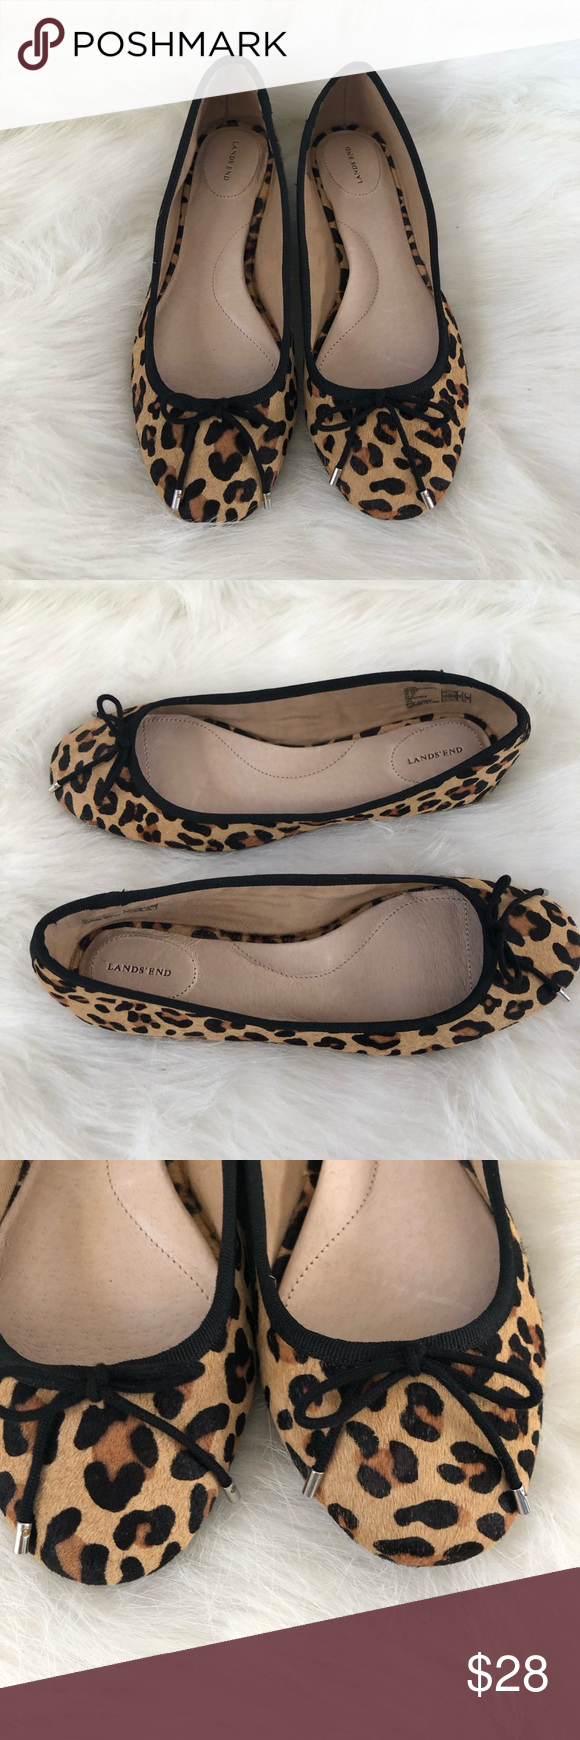 af448bfdfb6e Lands' End Leopard Cheetah Pony Hair flat Lands' End Leopard Cheetah Pony  Hair flat. NWOT, new without tag, pony hair leopard cheetah print flats  rubber ...